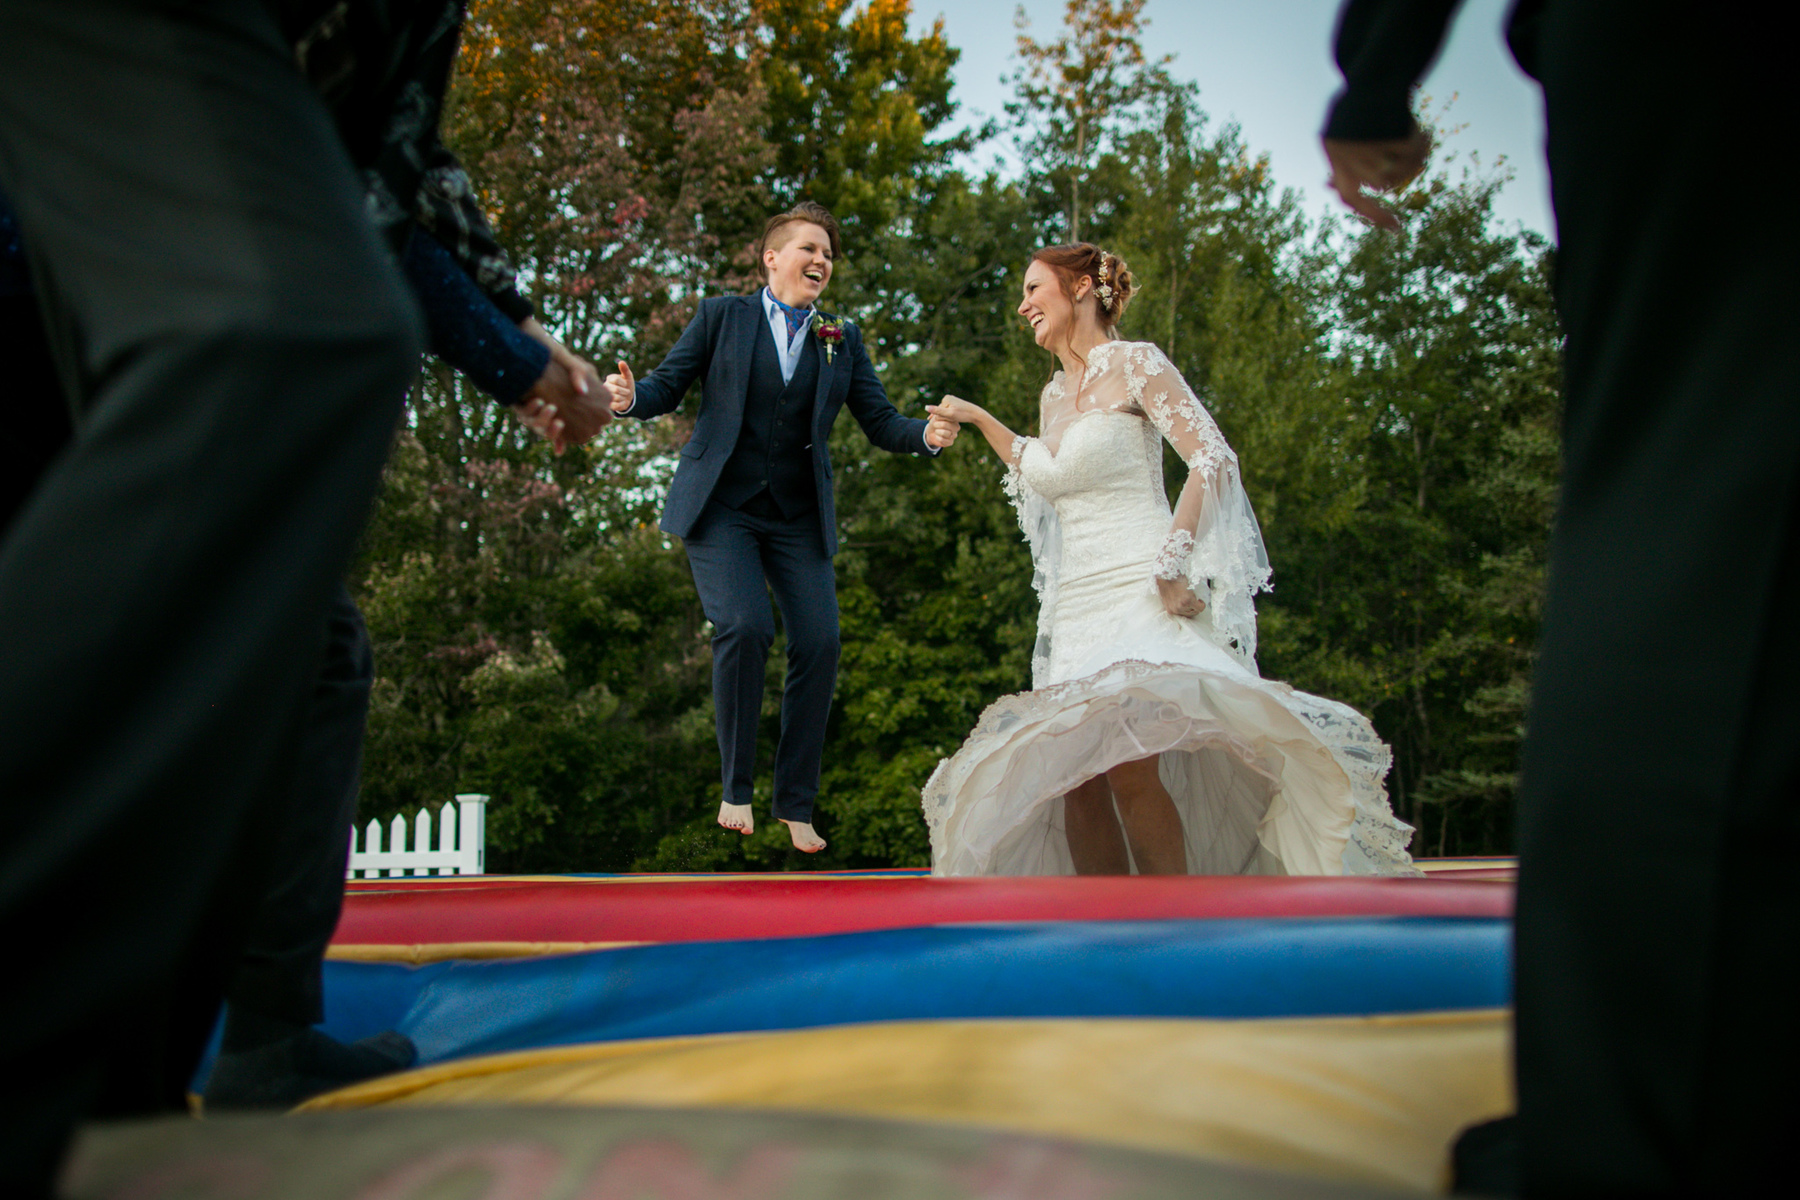 Unique wedding photographer in Acadia National Park, Maine with fun lesbian couple jumping in bouncy house for KOA camping wedding